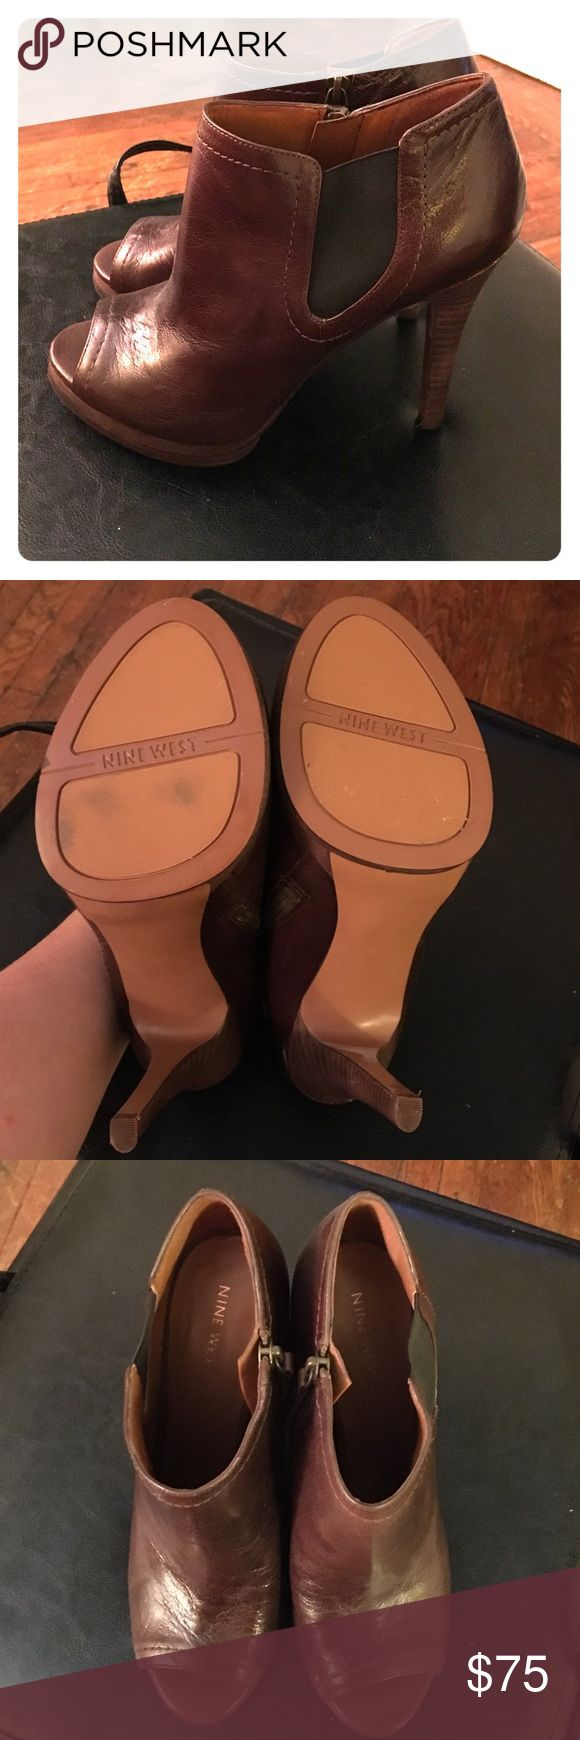 Hot pair of chocolate peep toe booties w/side zip! I wish I could wear these, but my feet are too wide! Ordered them online, wore them around my apartment and could never get comfortable in them. Mint condition, never worn but around my apartment once. Nine West Shoes Ankle Boots & Booties